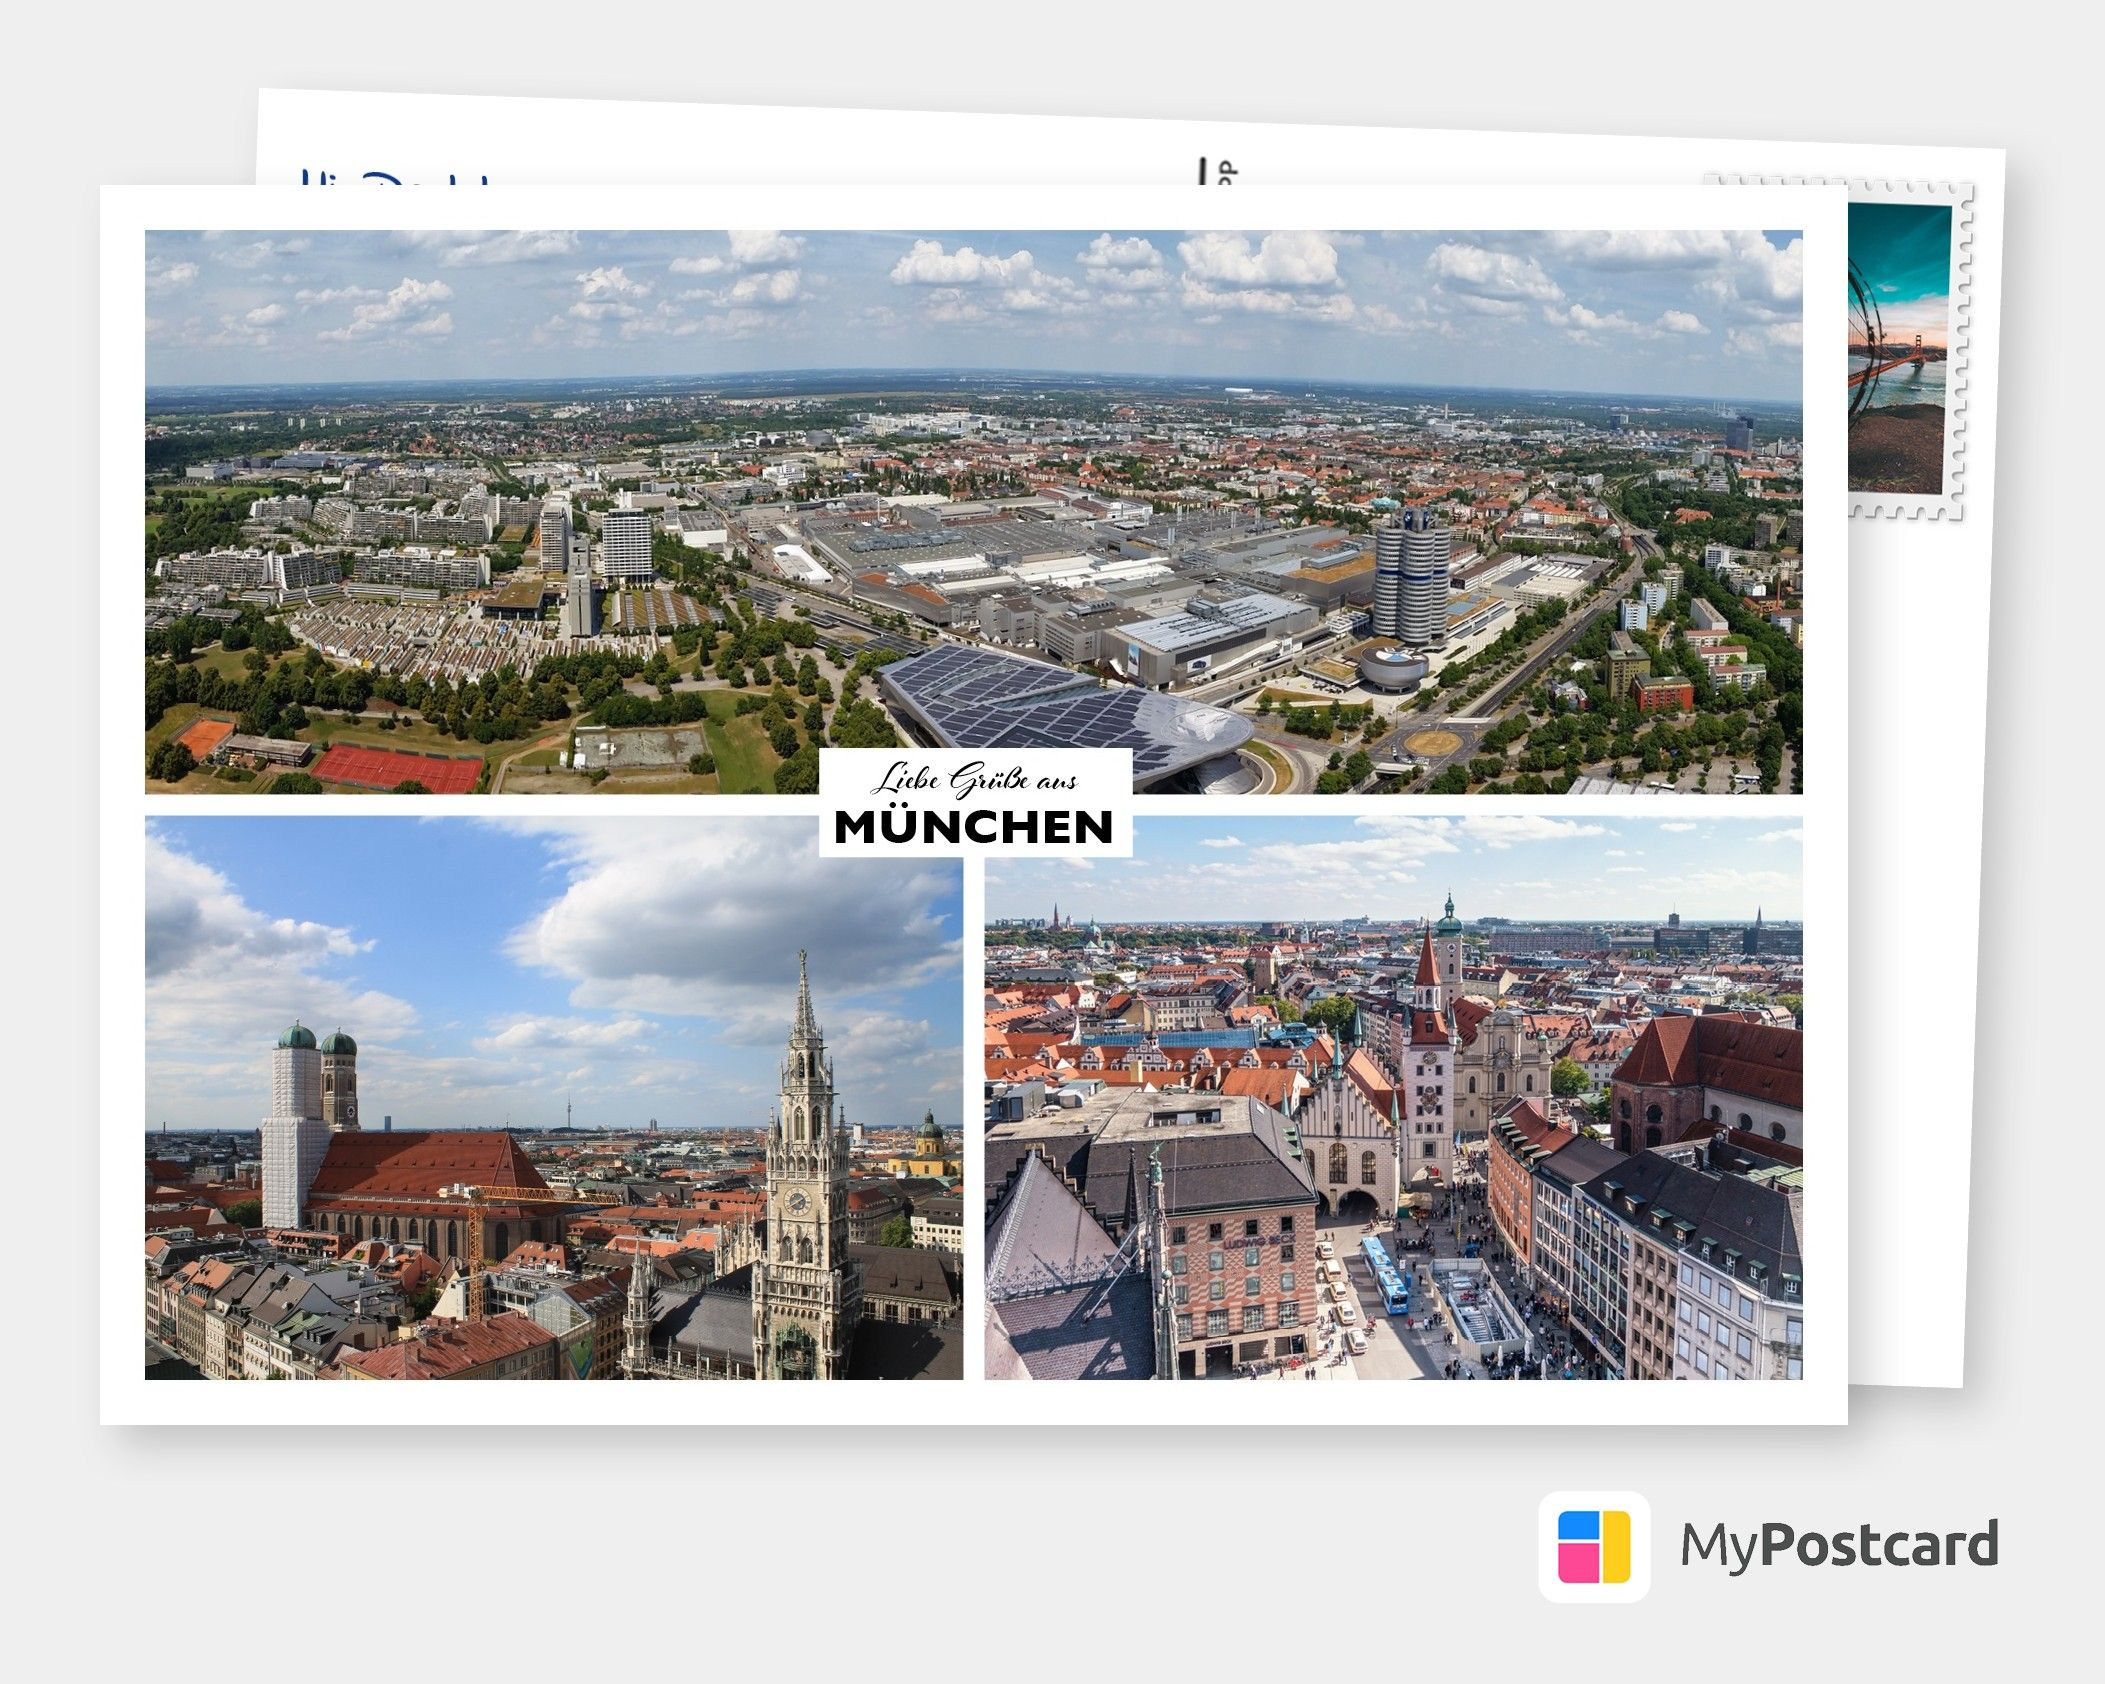 Many Greetings From Munchen Vacation Cards Quotes Send Real Postcards Online In 2020 Urlaub Grusse Urlaubsgrusse Grusskarte